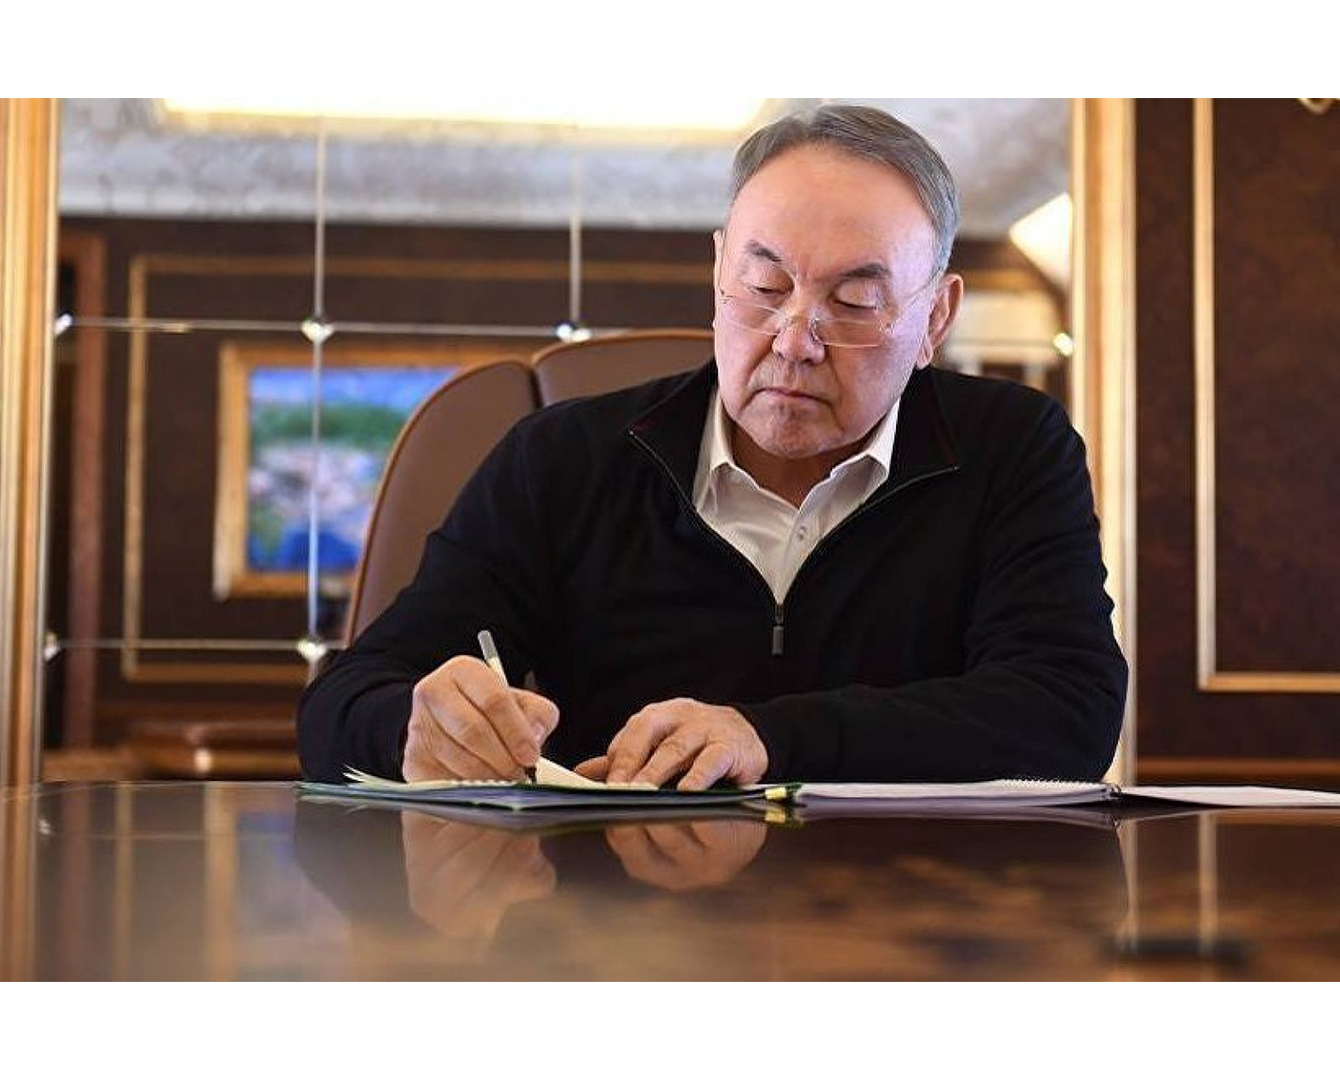 Article by President Nursultan Nazarbayev 'Seven Facets of the Great Steppe'